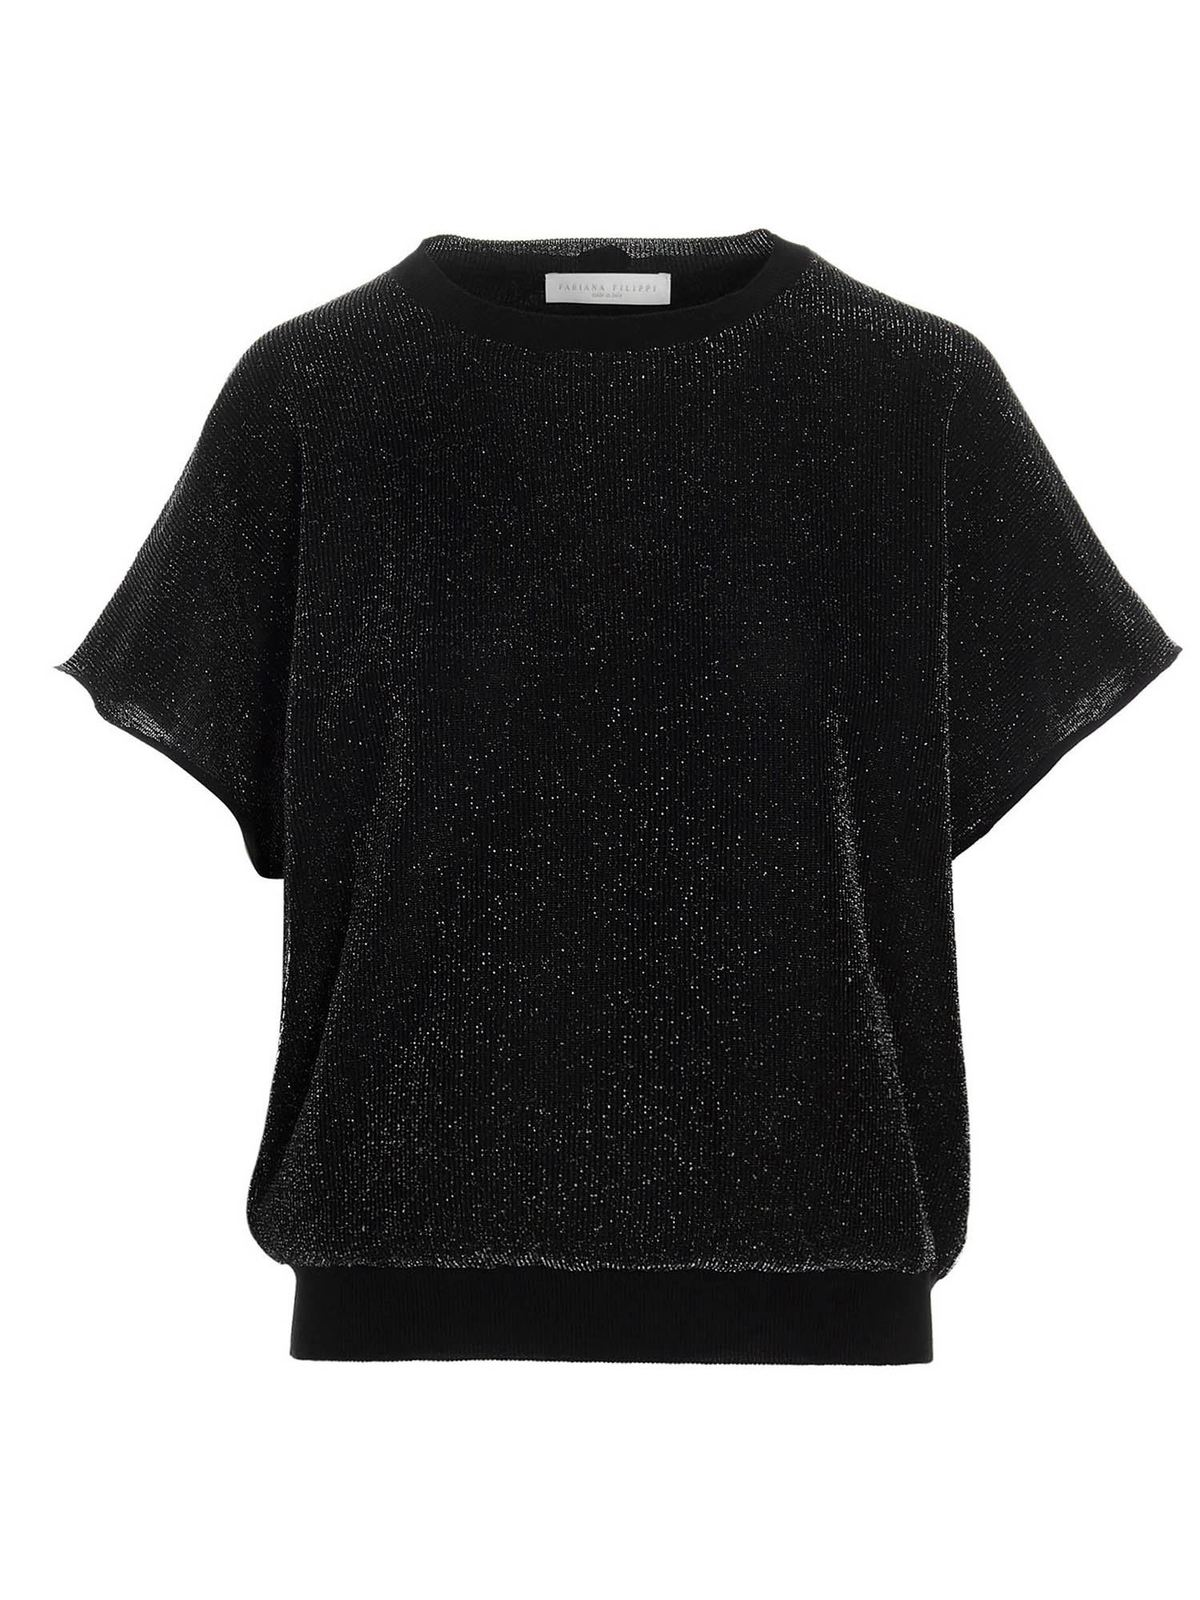 Fabiana Filippi LUREX INSERT SWEATER IN BLACK